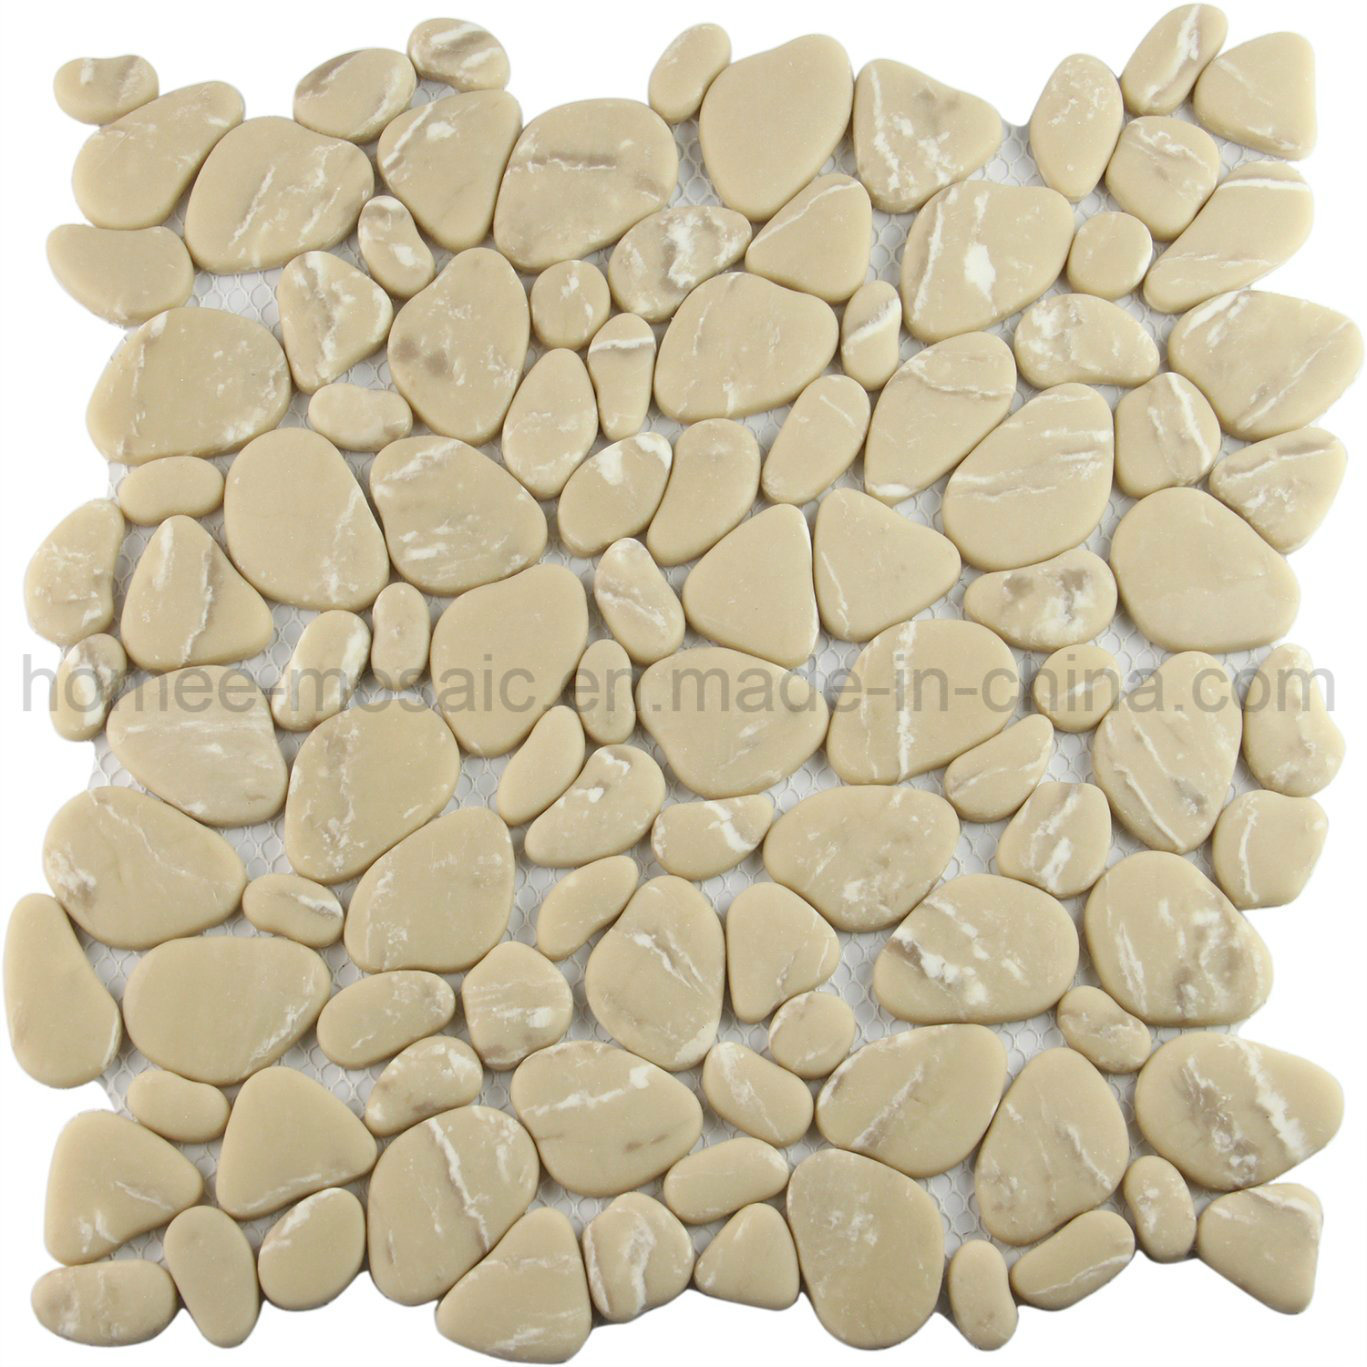 Hot Item Building Materials Light Brown Gl Pebble Mosaic Tile For Floor